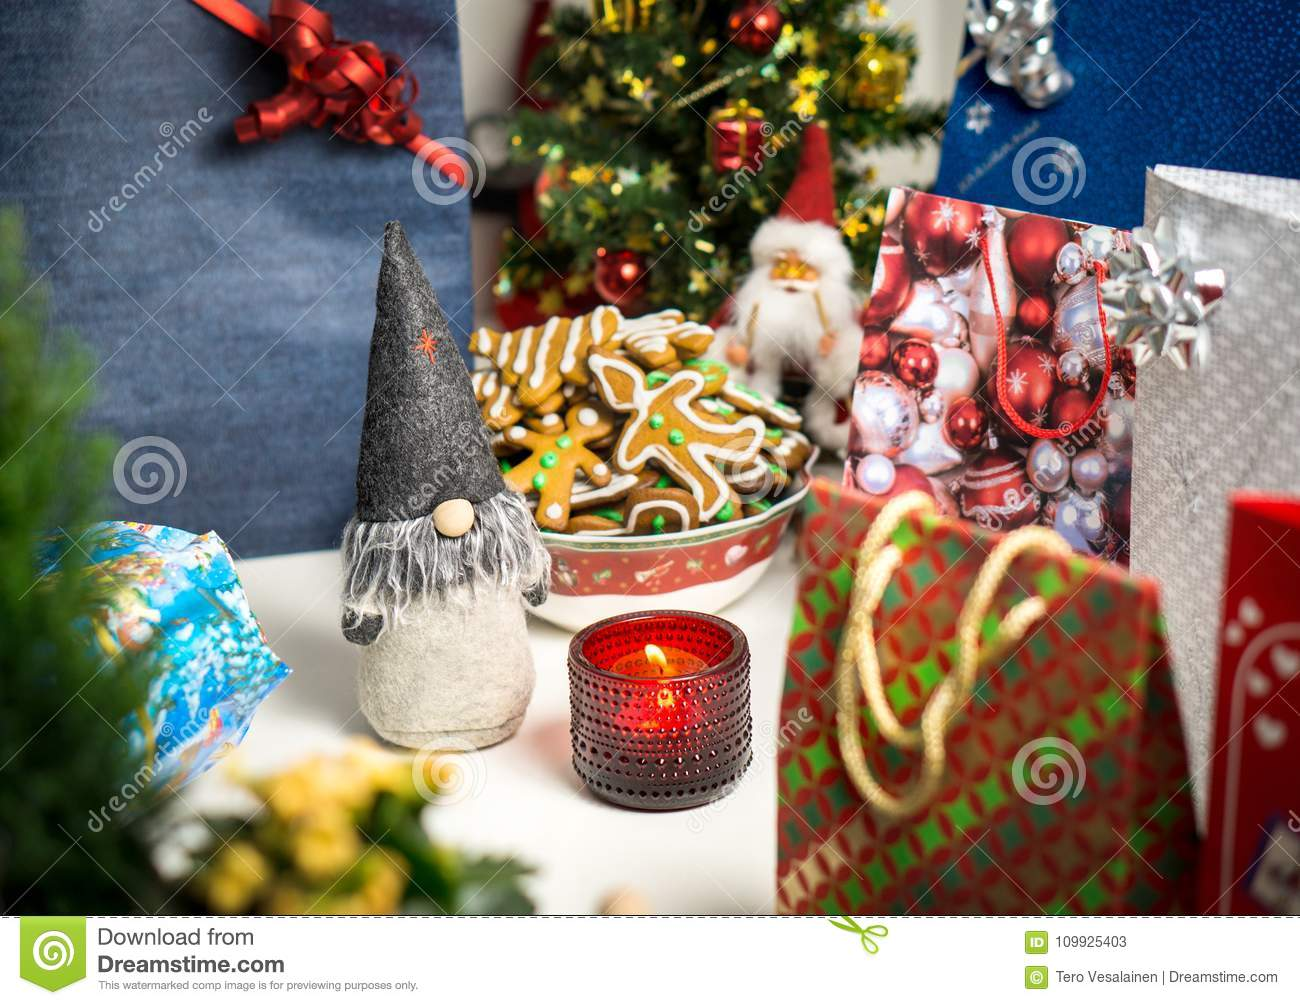 Christmas Decorations And Presents On Table Stock Image Image Of